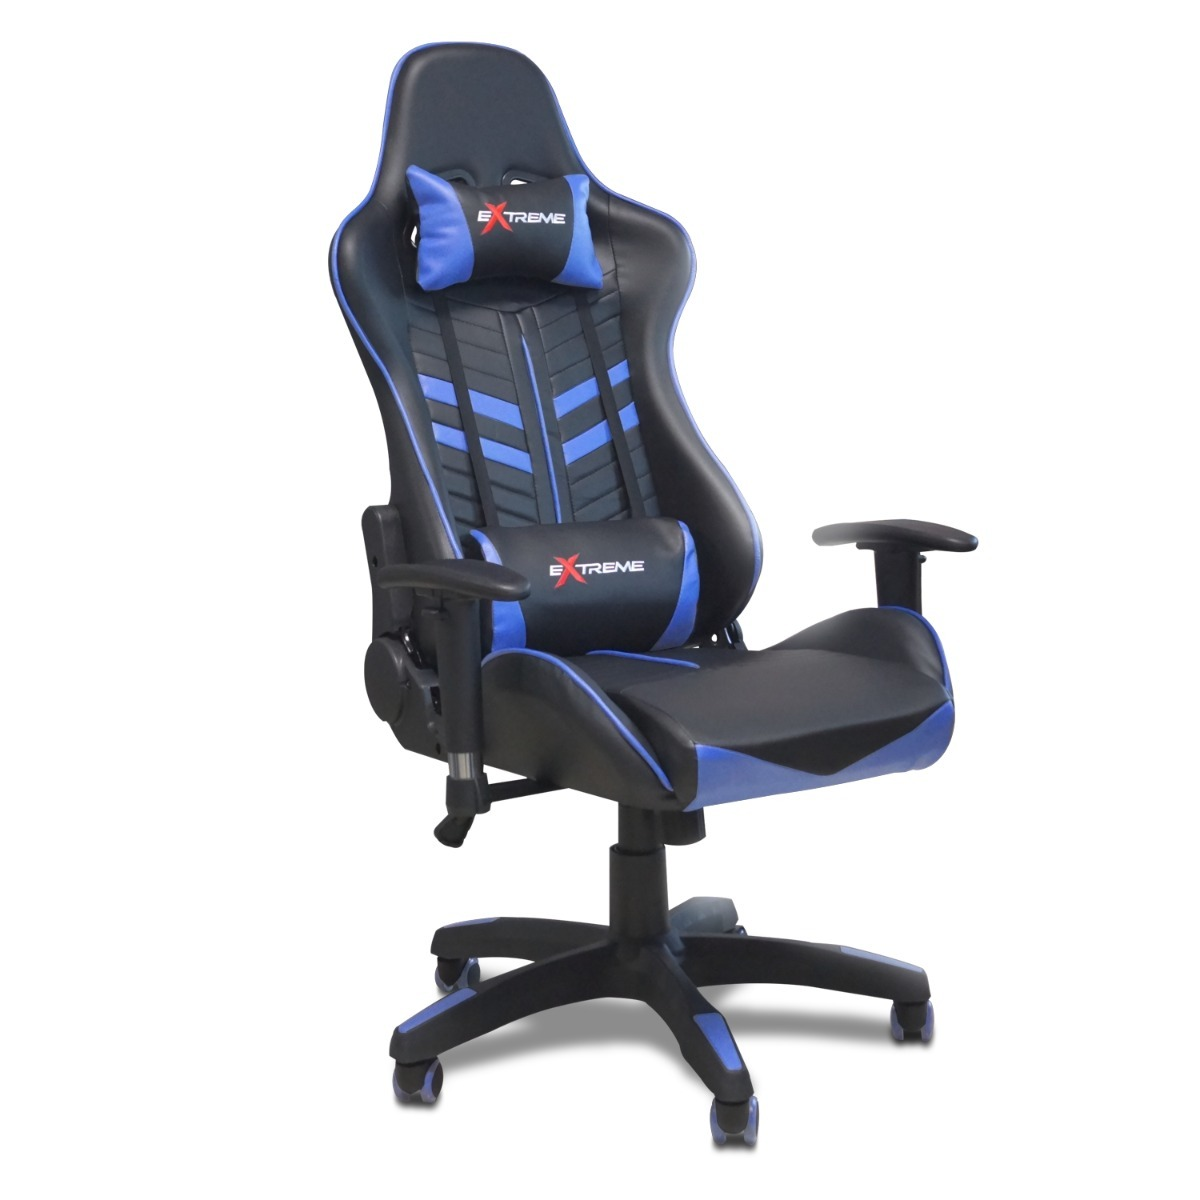 Silla gamer extreme fox 1 u s 260 00 en mercado libre for Sillas montevideo